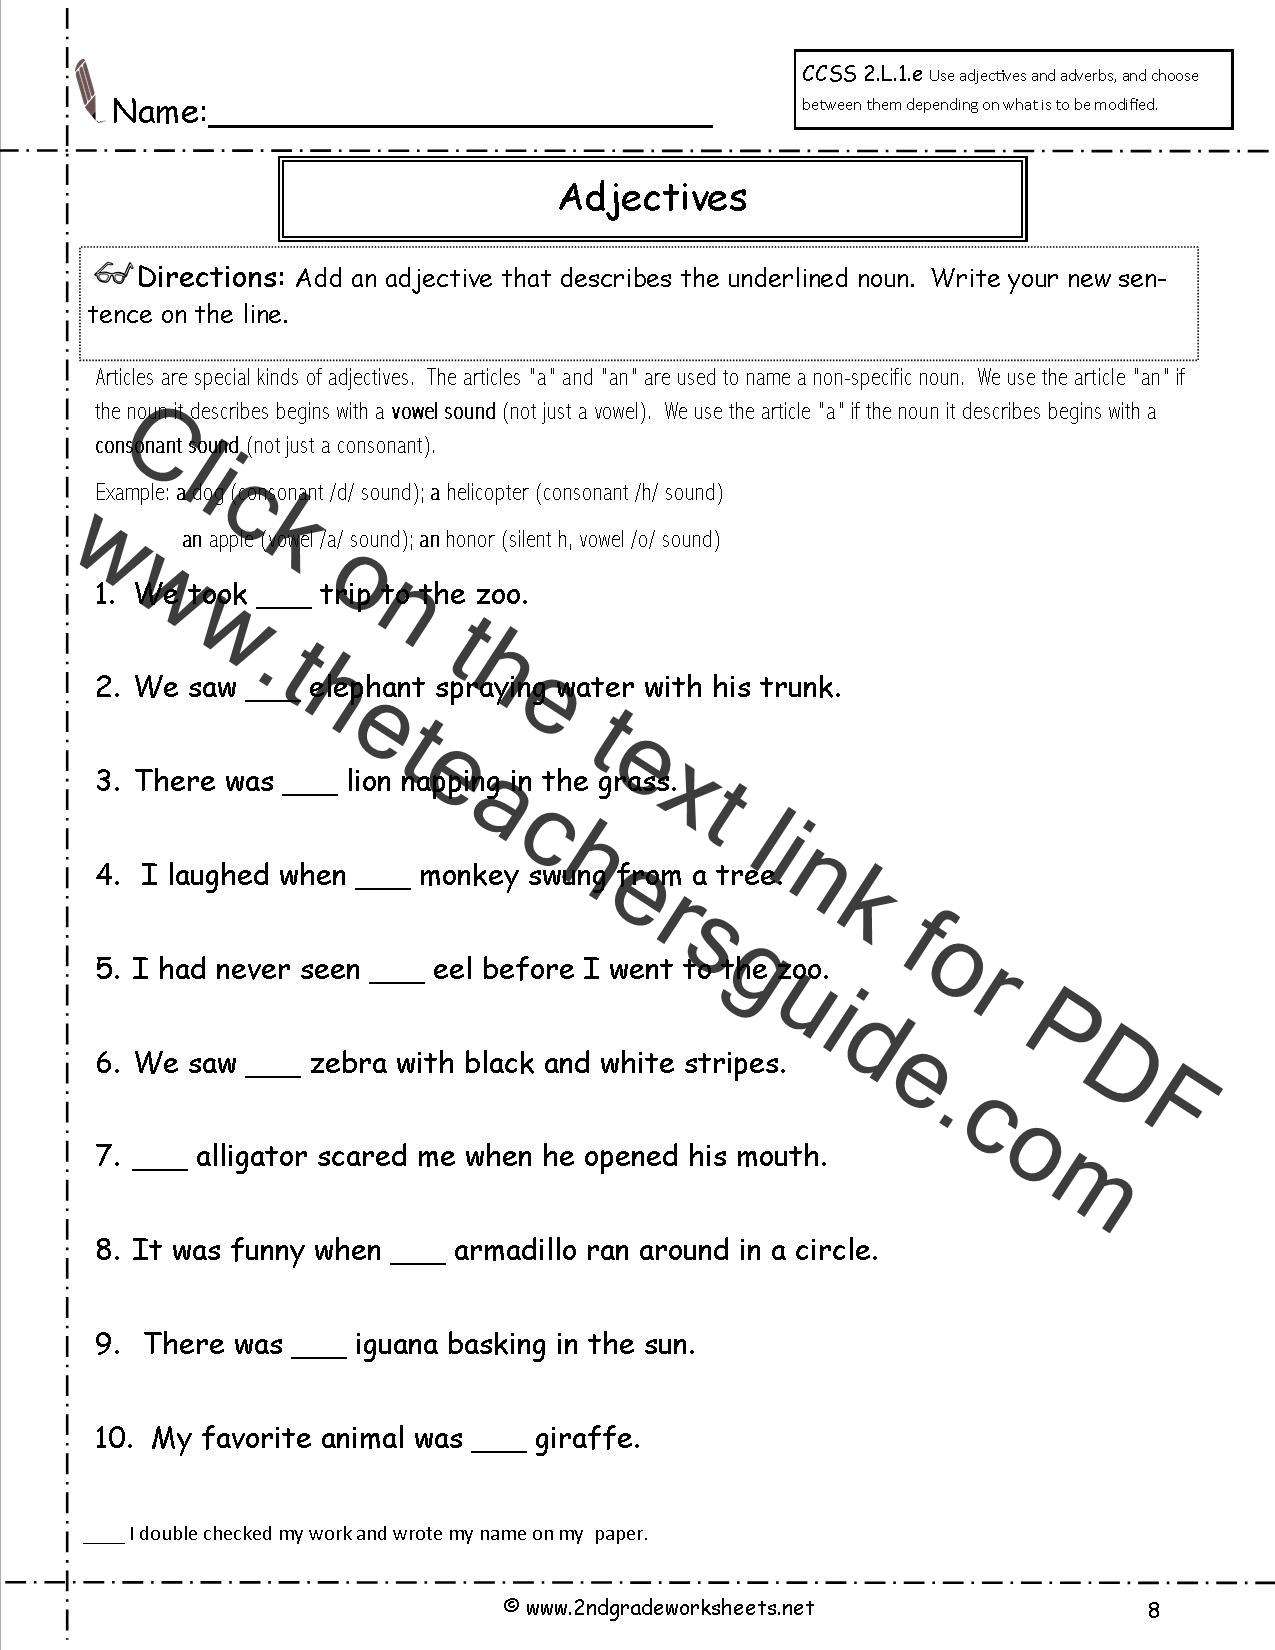 Worksheets Free Printable Reading Comprehension Worksheets For 2nd Grade free languagegrammar worksheets and printouts adjectives worksheets